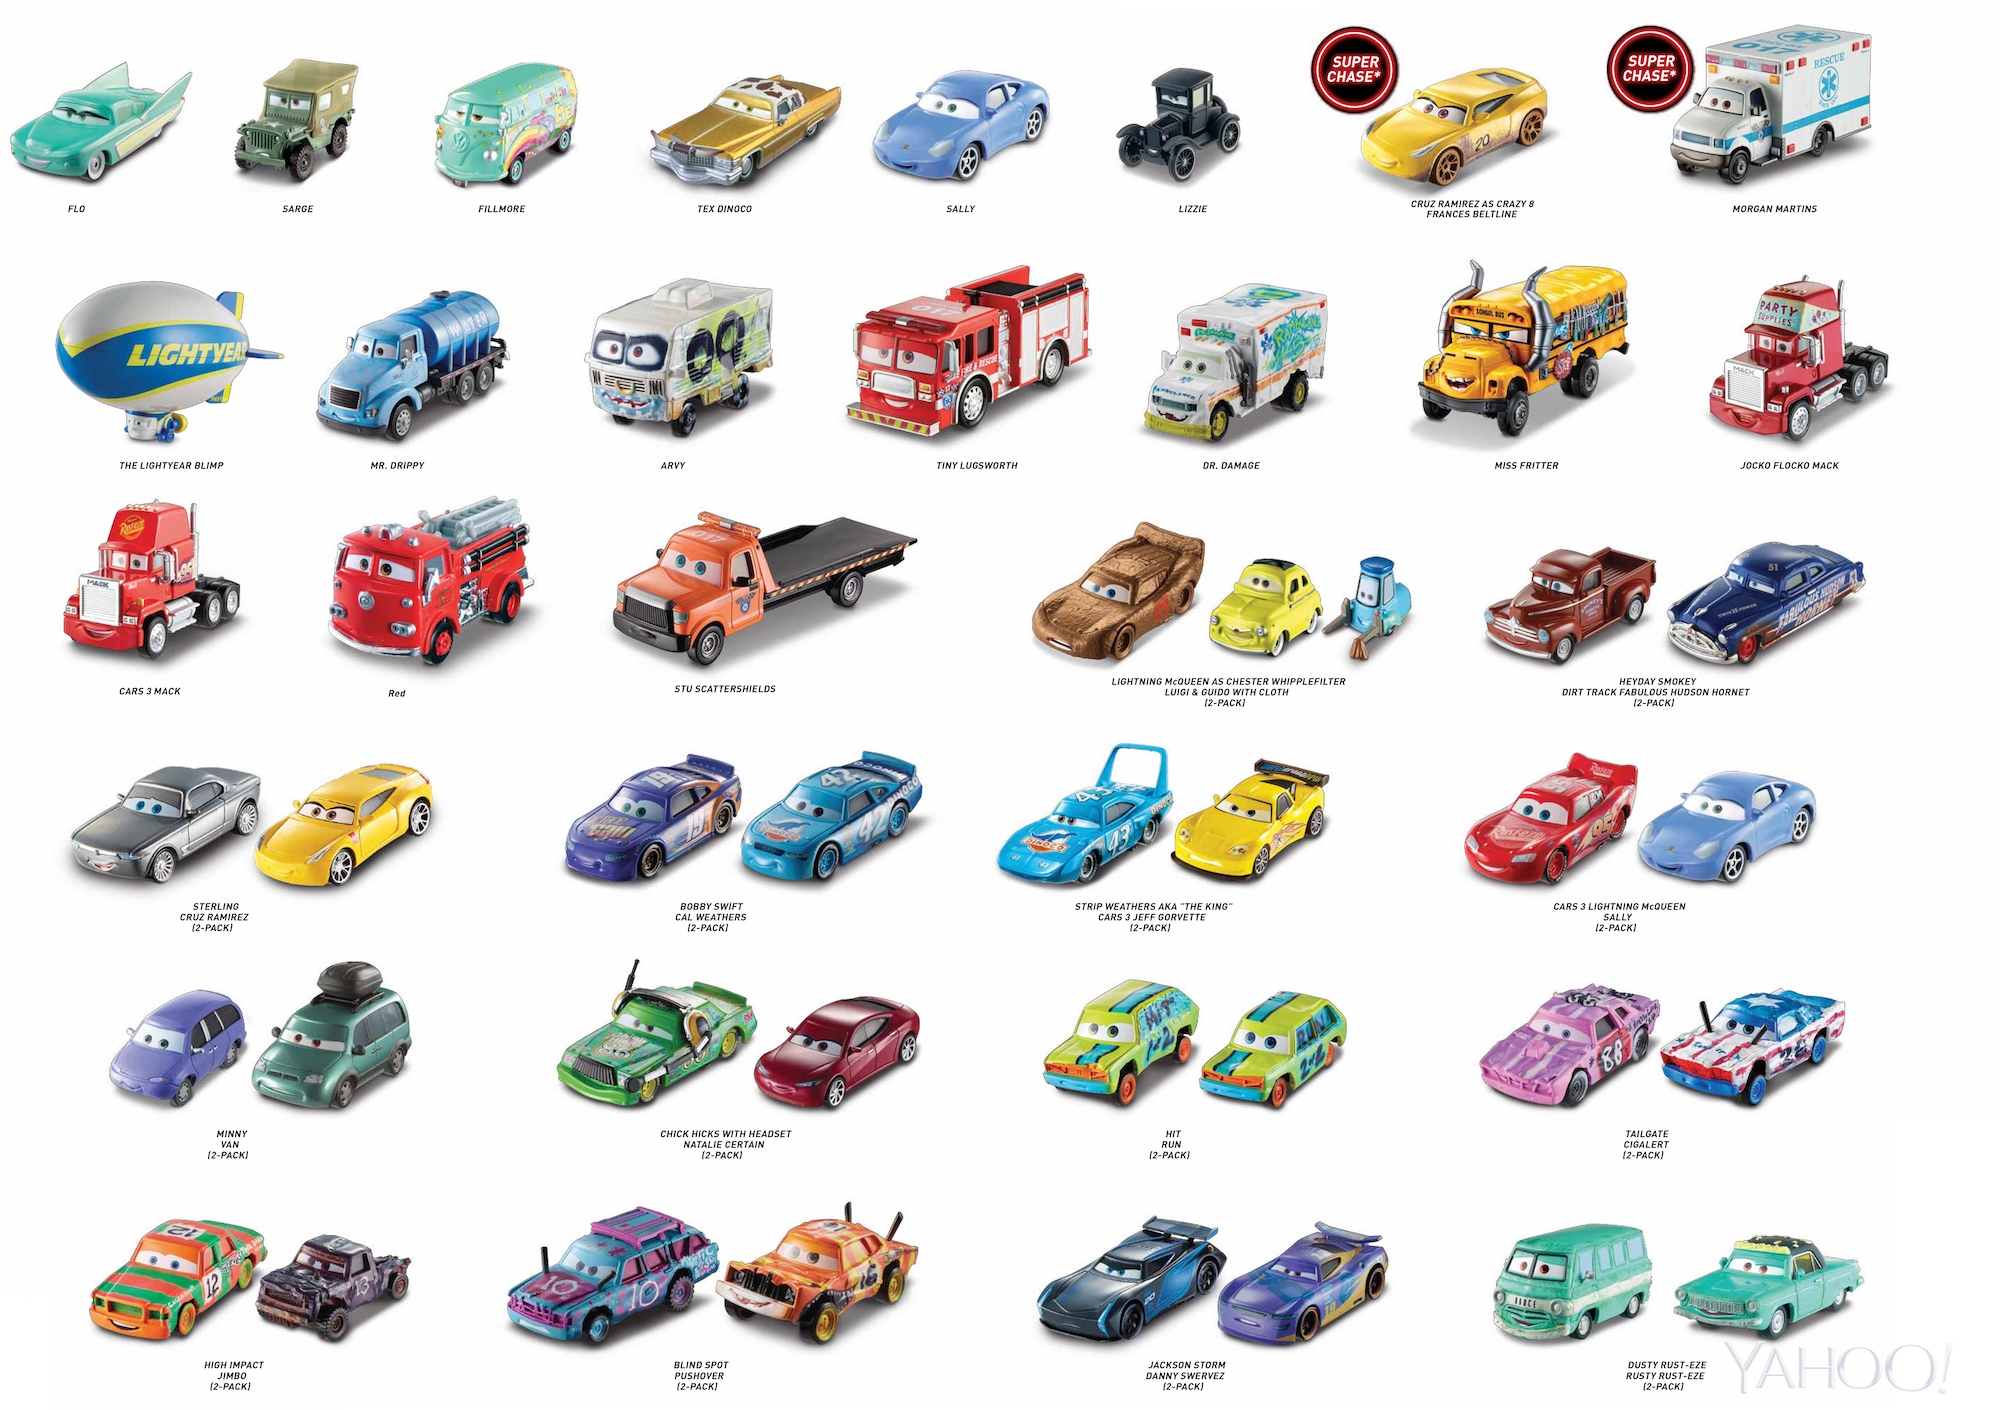 Cars 3 Exclusive New Toy Vehicles Put Radiator Springs Next Gen